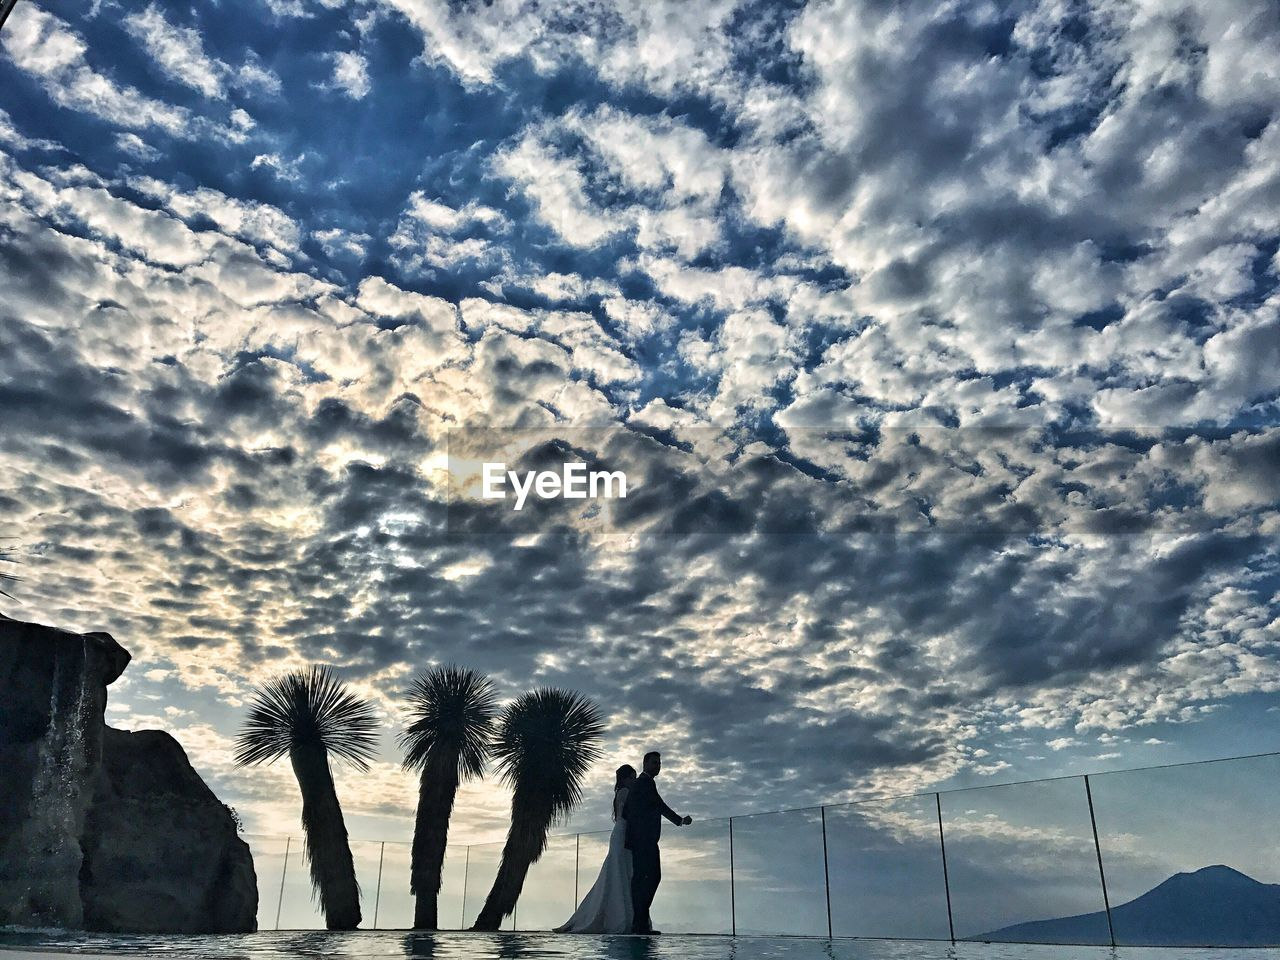 cloud - sky, sky, outdoors, real people, nature, day, lifestyles, low angle view, standing, beauty in nature, men, togetherness, people